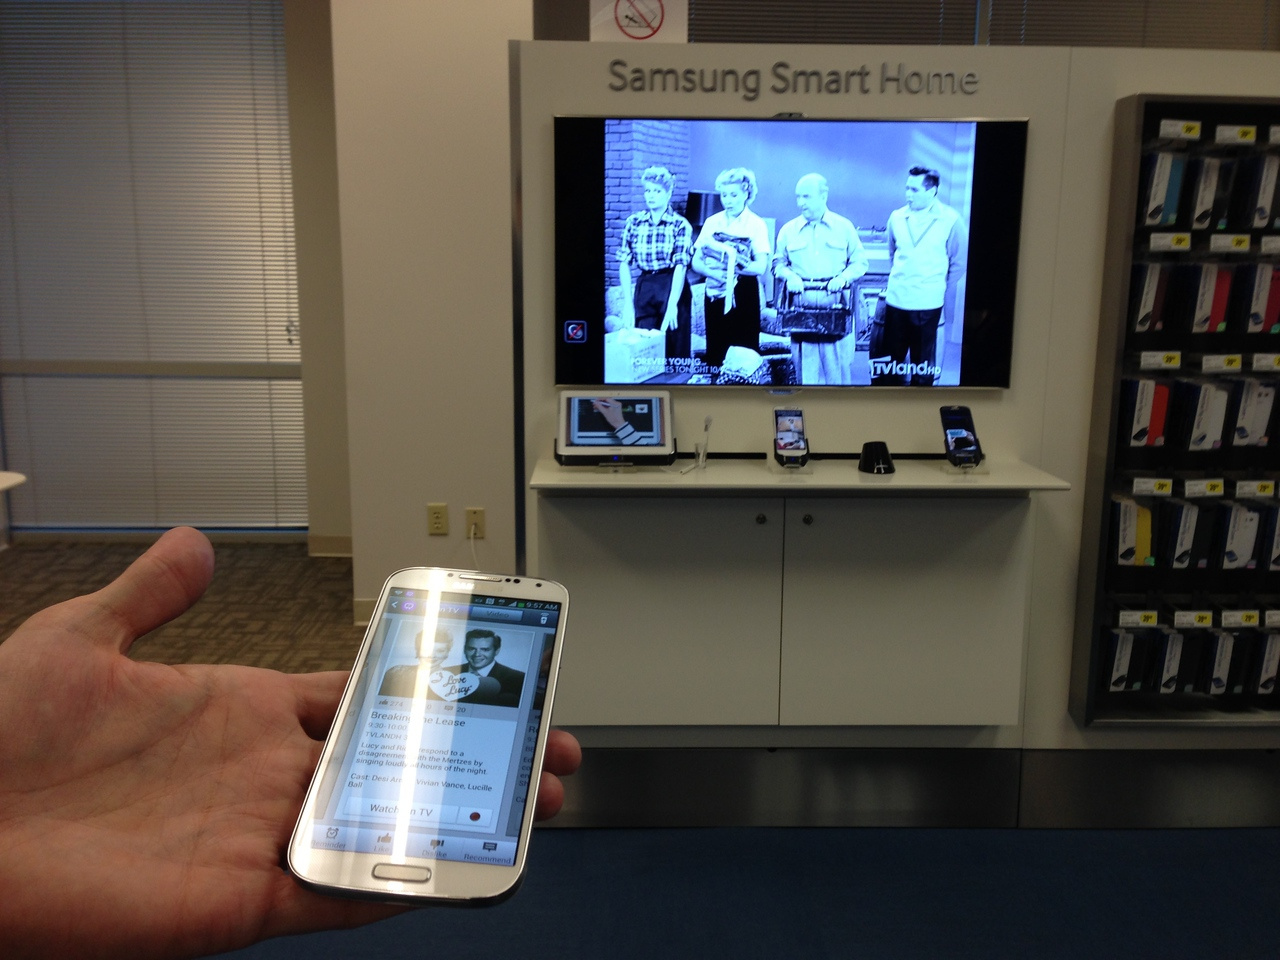 Among the features on the latest Galaxy S smartphone is the ability to search a variety of TV and video service listings and then change the channel on any brand of TV.